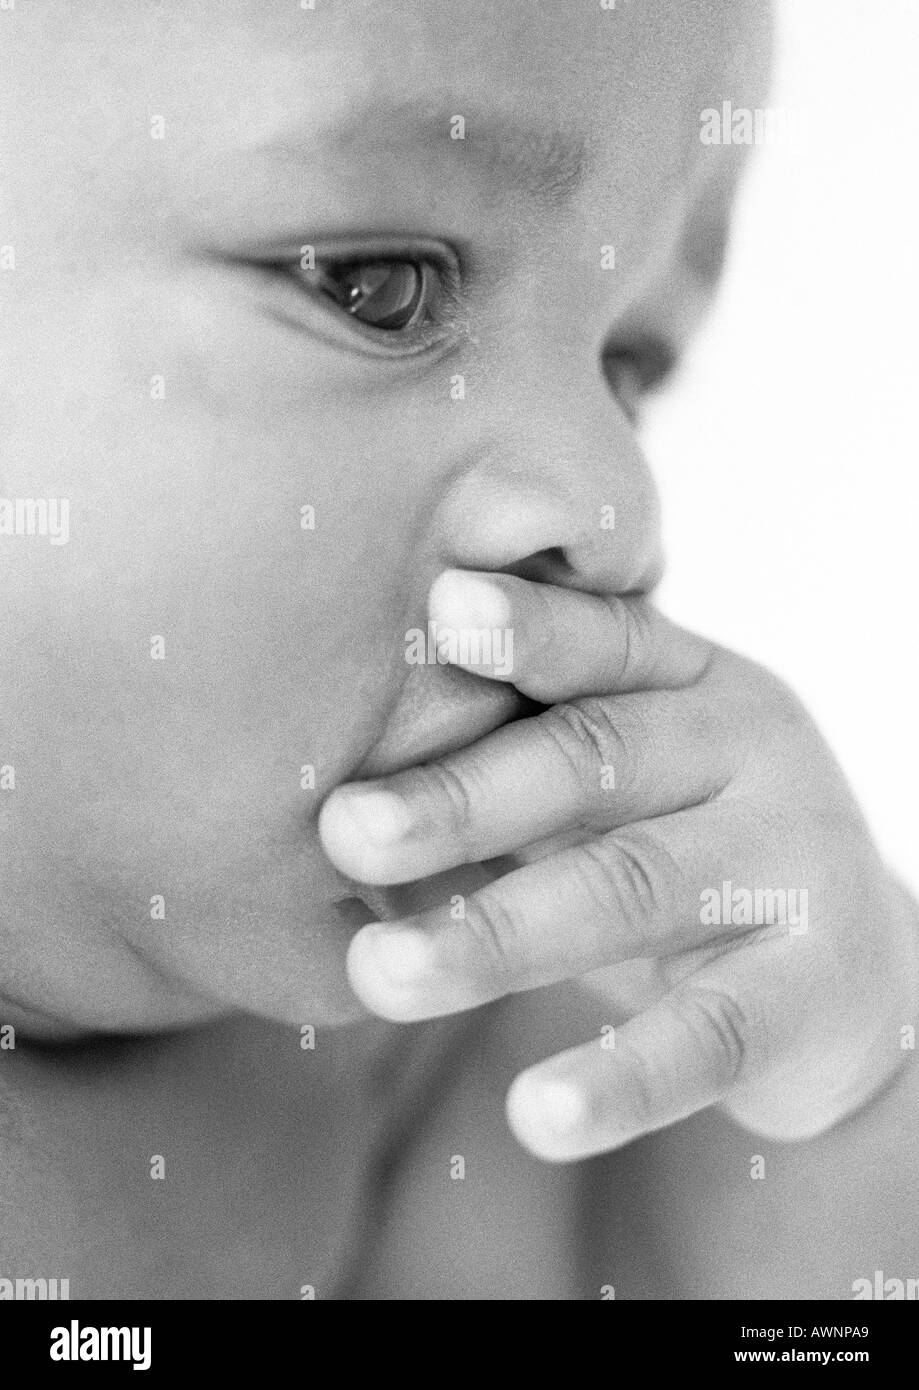 Baby with hand over mouth, close-up, b&w - Stock Image